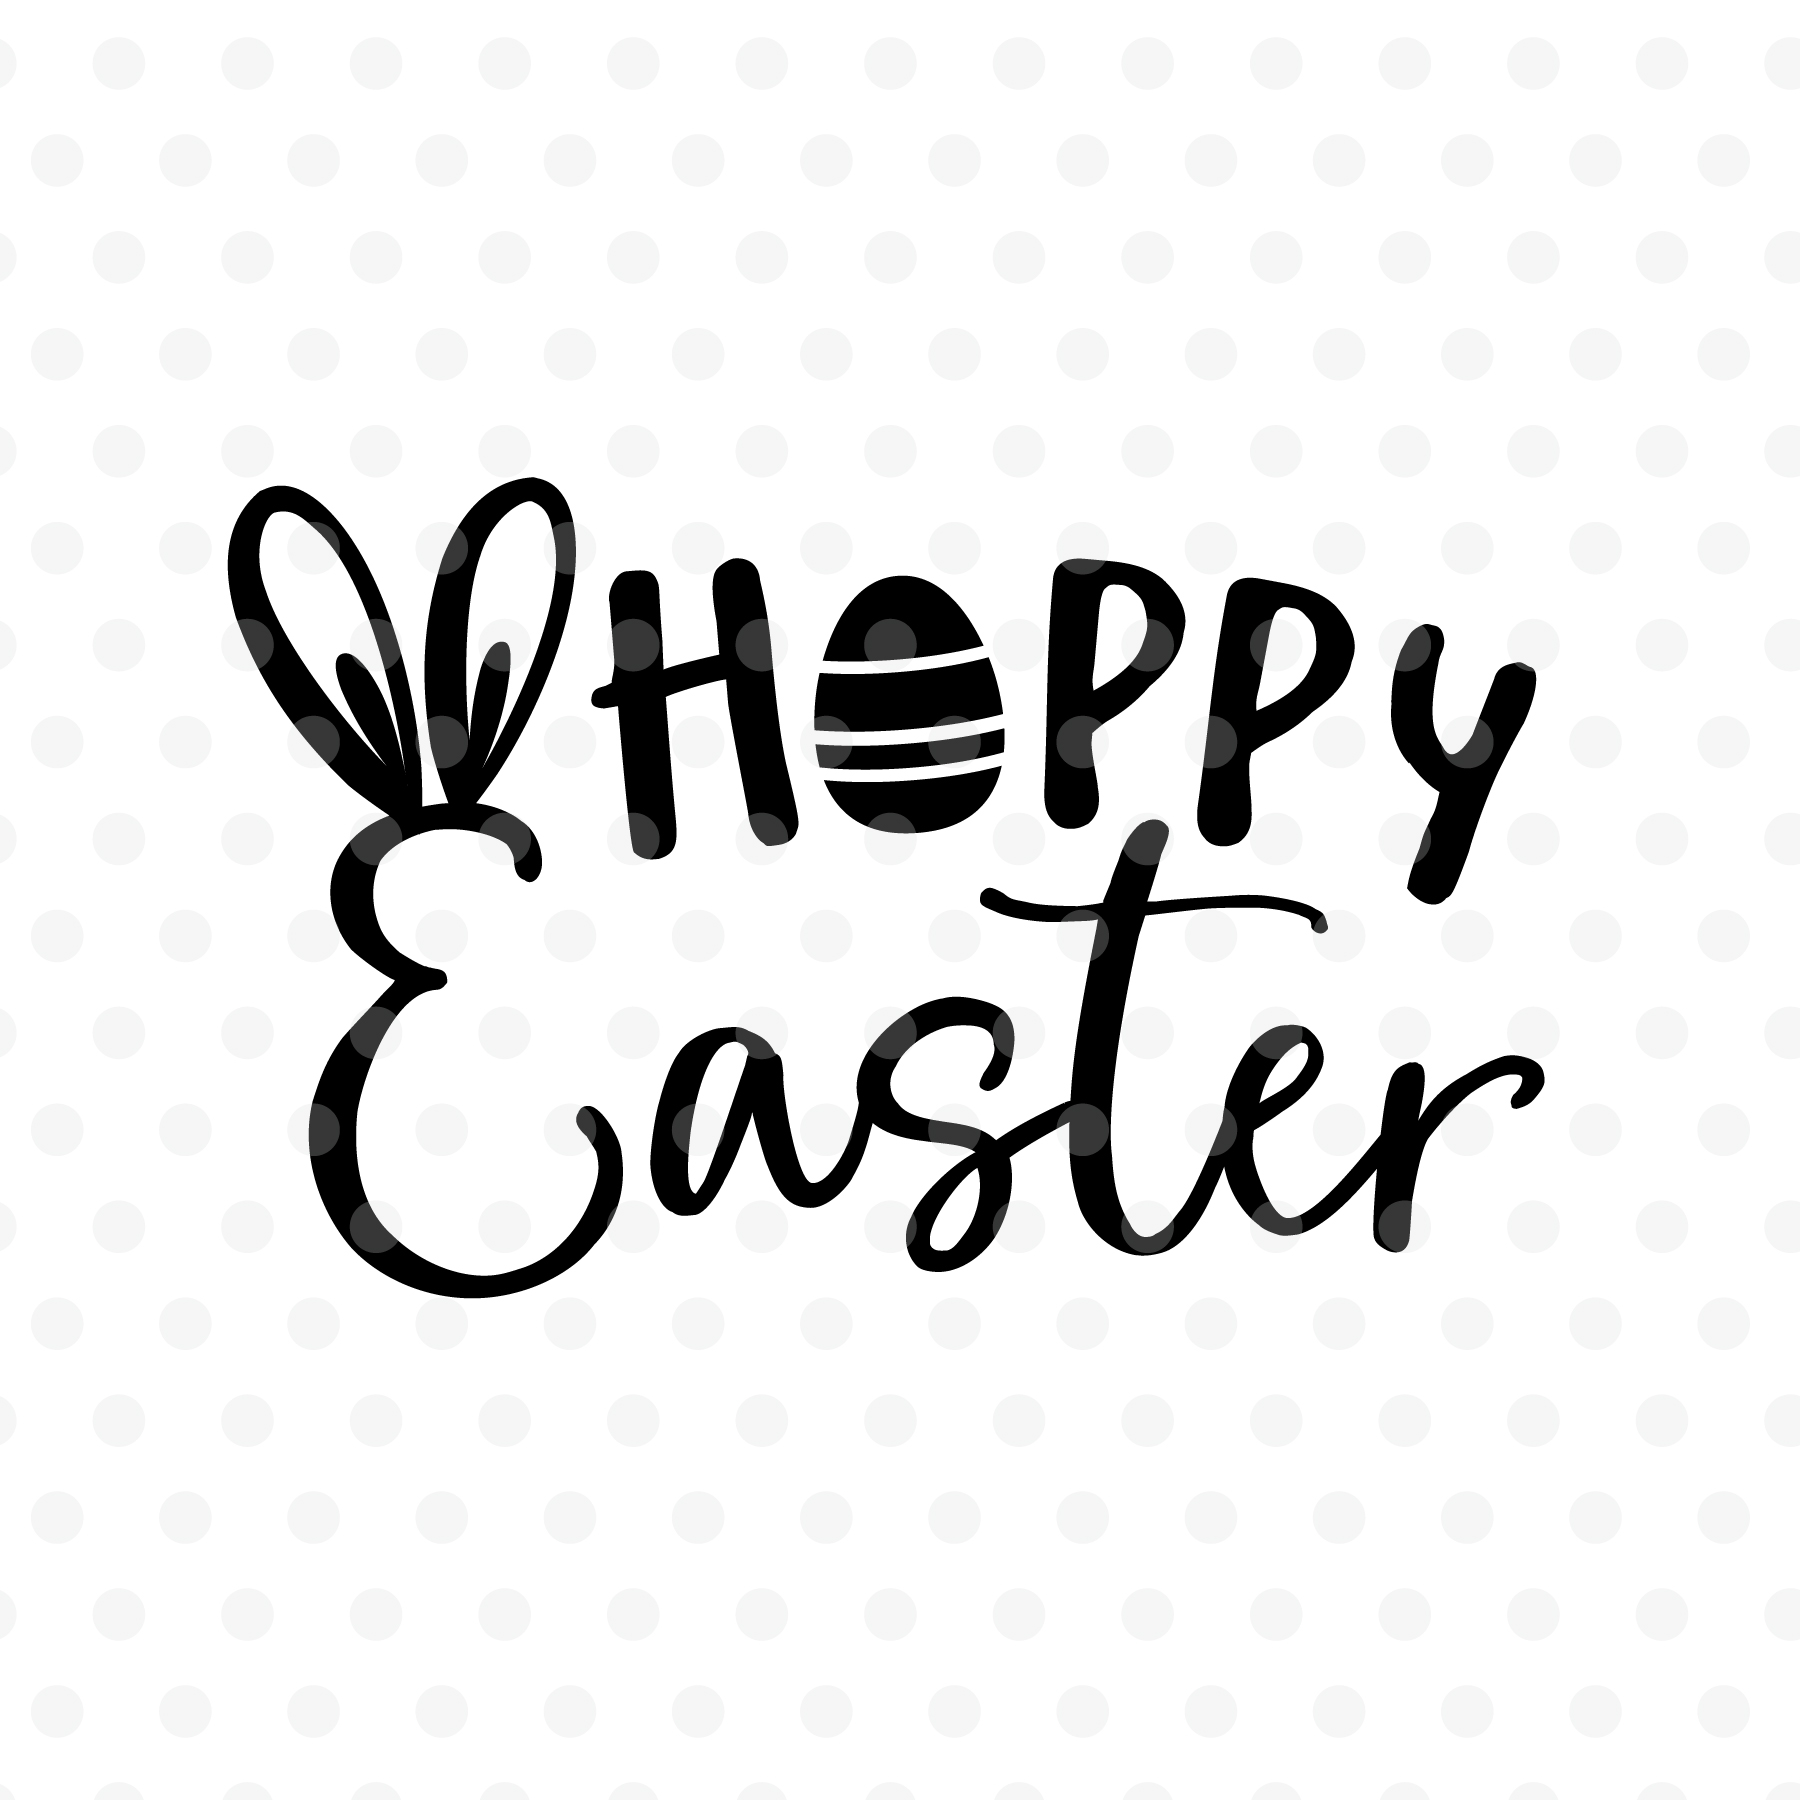 Hoppy Easter SVG, EPS, PNG, DXF example image 2